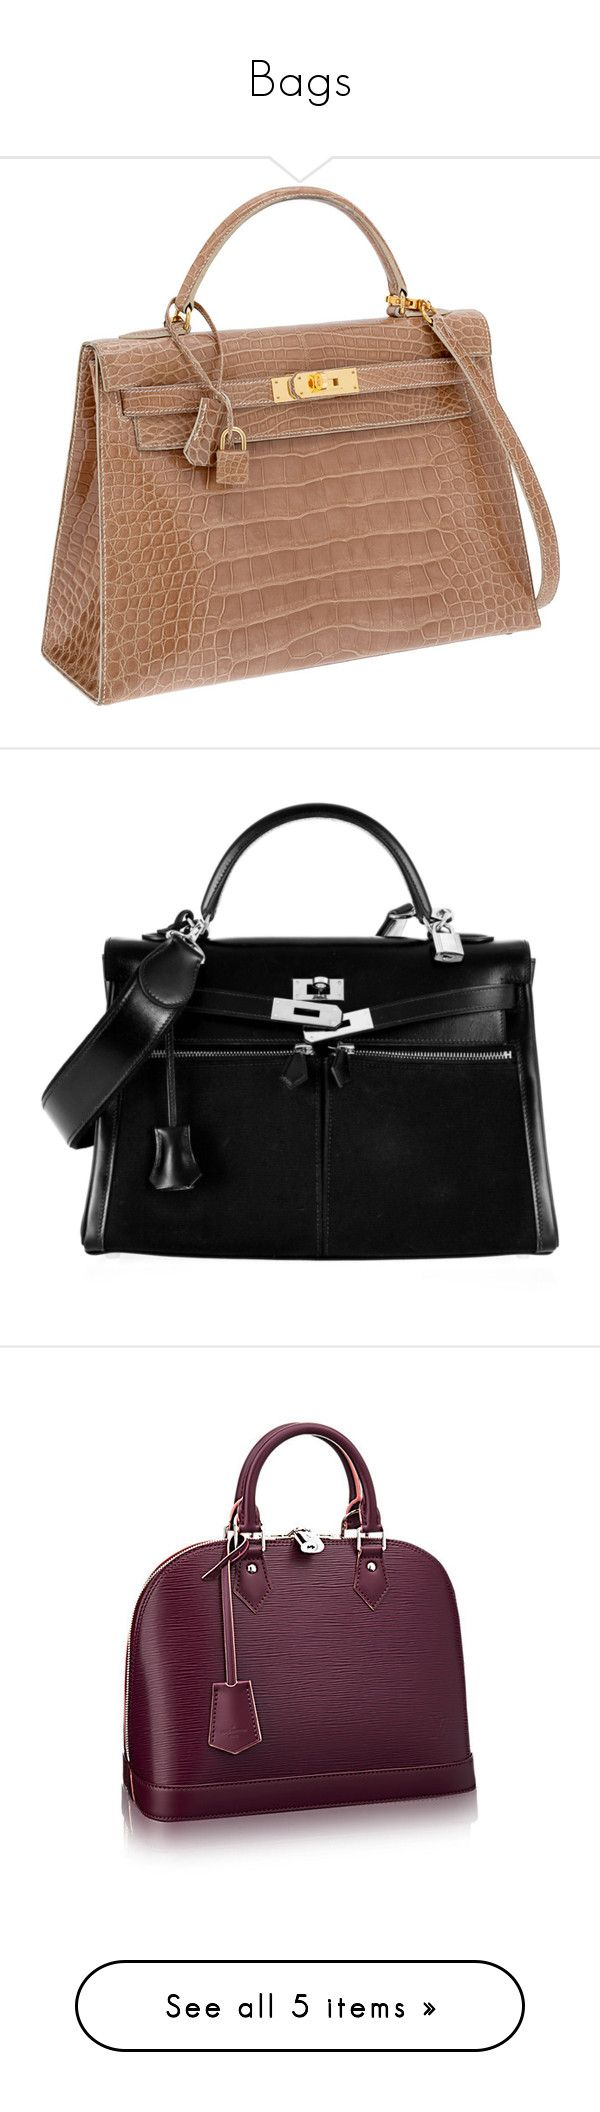 """""""Bags"""" by aitanas-closet ❤ liked on Polyvore featuring accessories, bags, purses, hermès, handbags, black bags, bolsos, hermes purse, hermes bag and silver purse"""